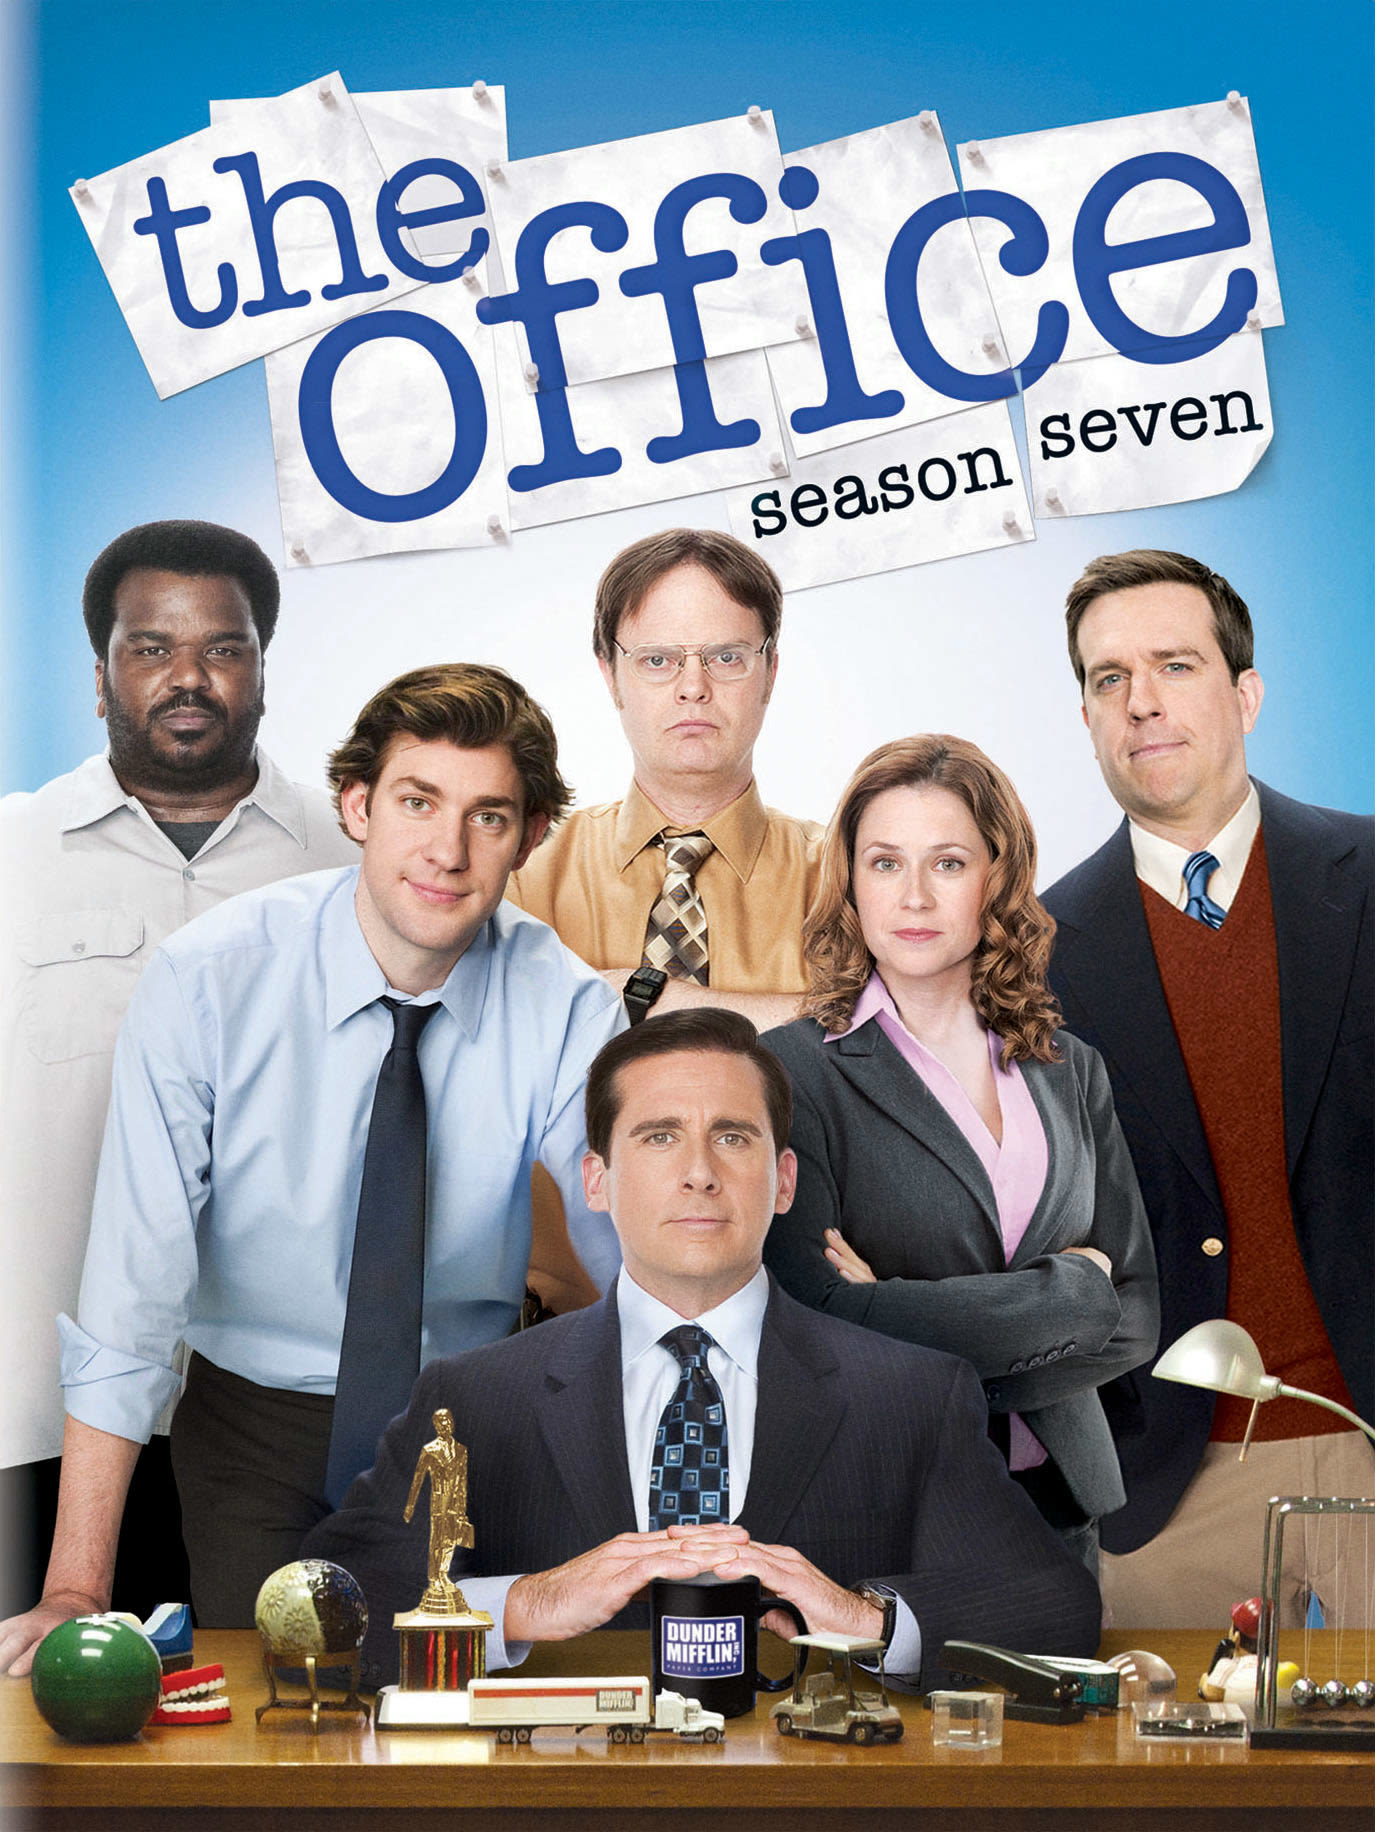 The Office - An American Workplace: Season 7 (2011) [DVD]